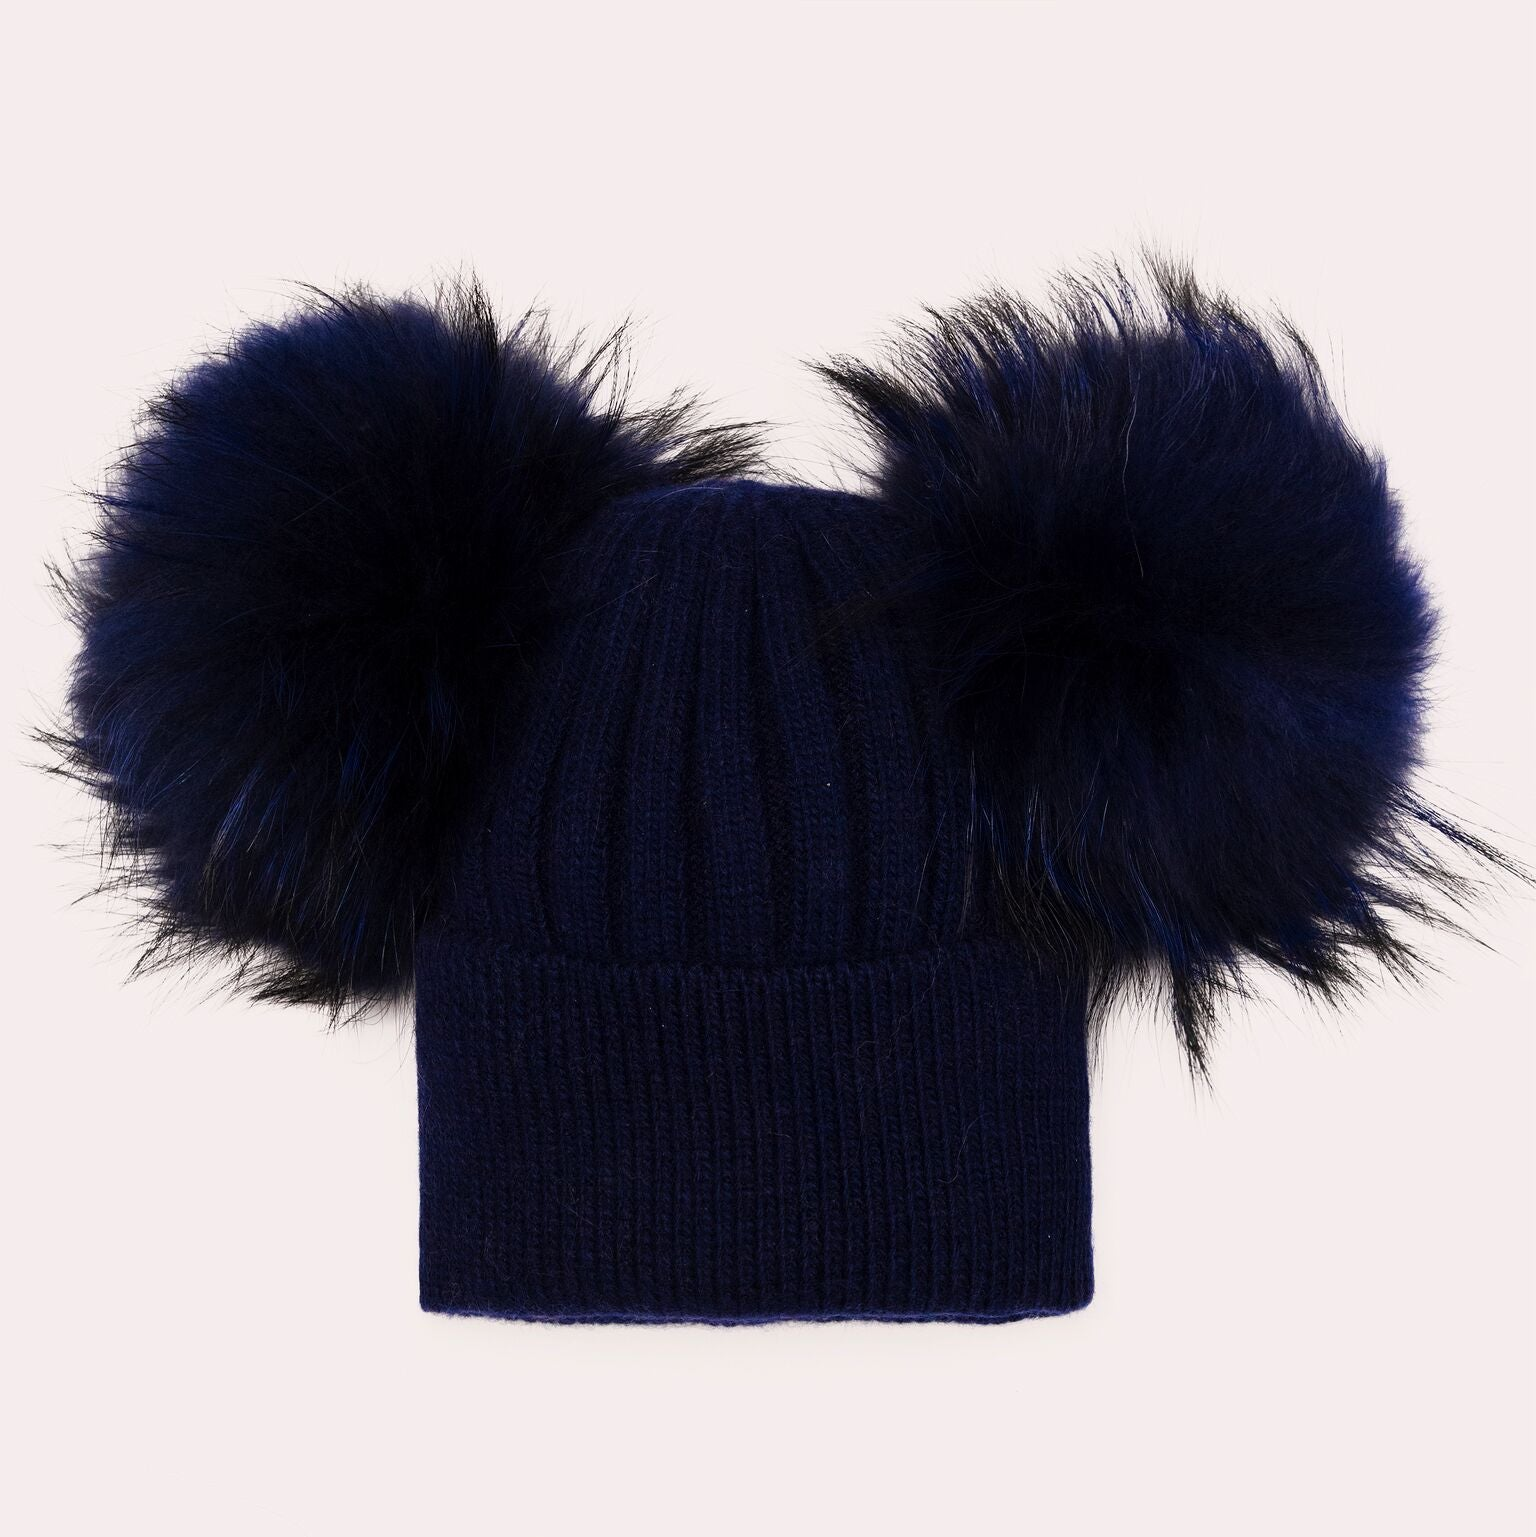 6ac22e6fe86 Luxe Angora double pom hat - NAVY BLUE – Bobblebabies